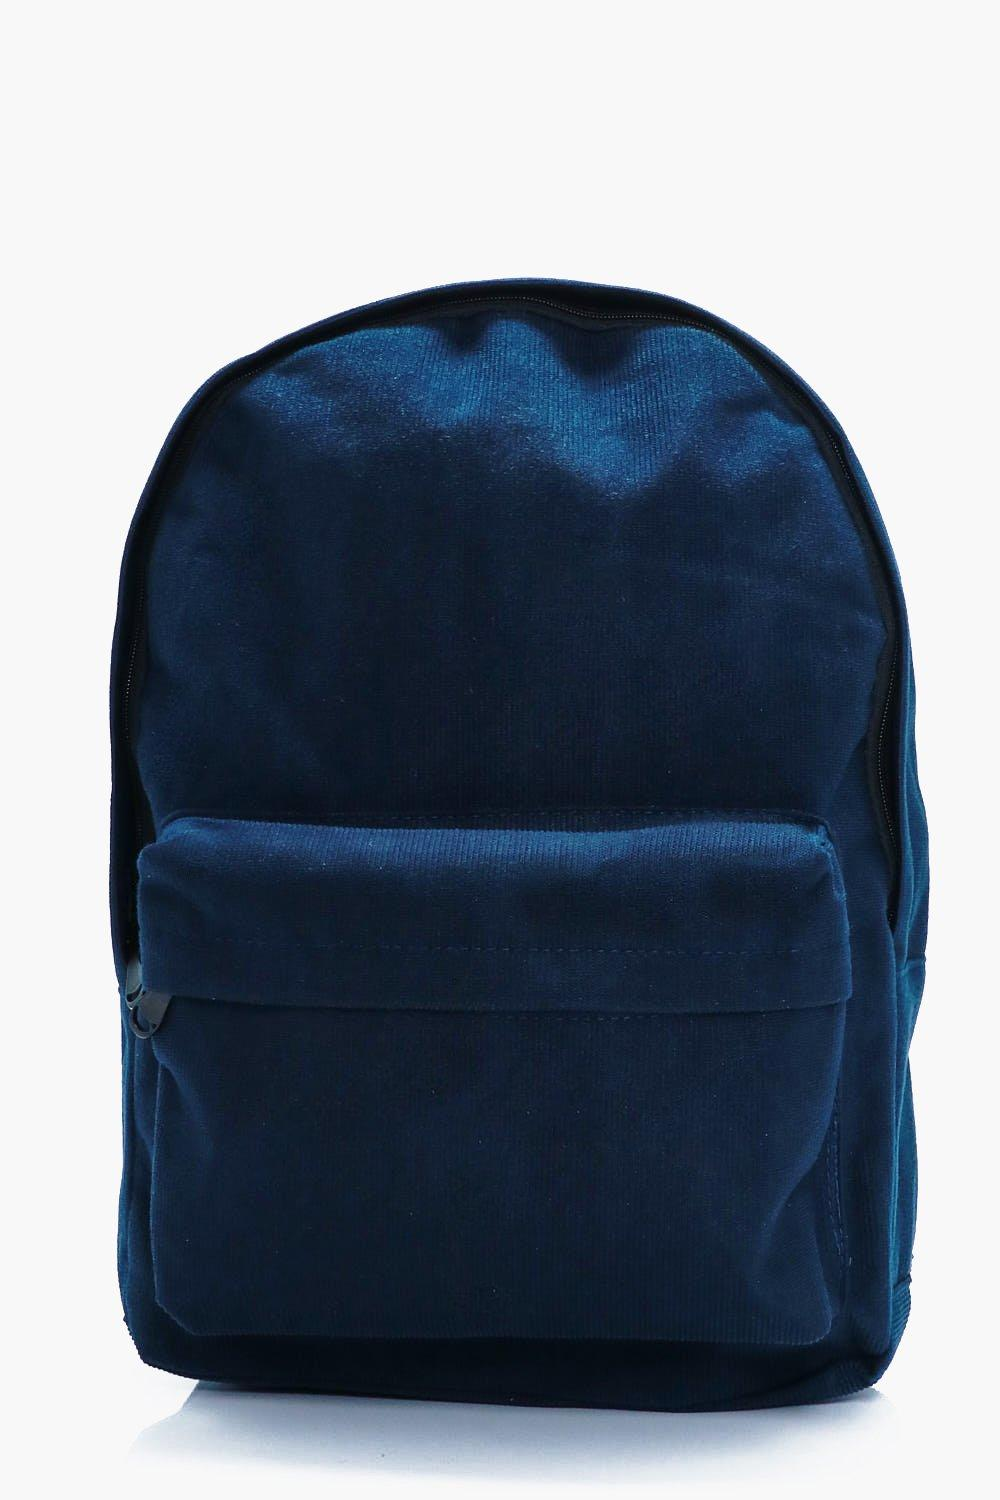 Back to School Backpack - navy - Corduroy Back to